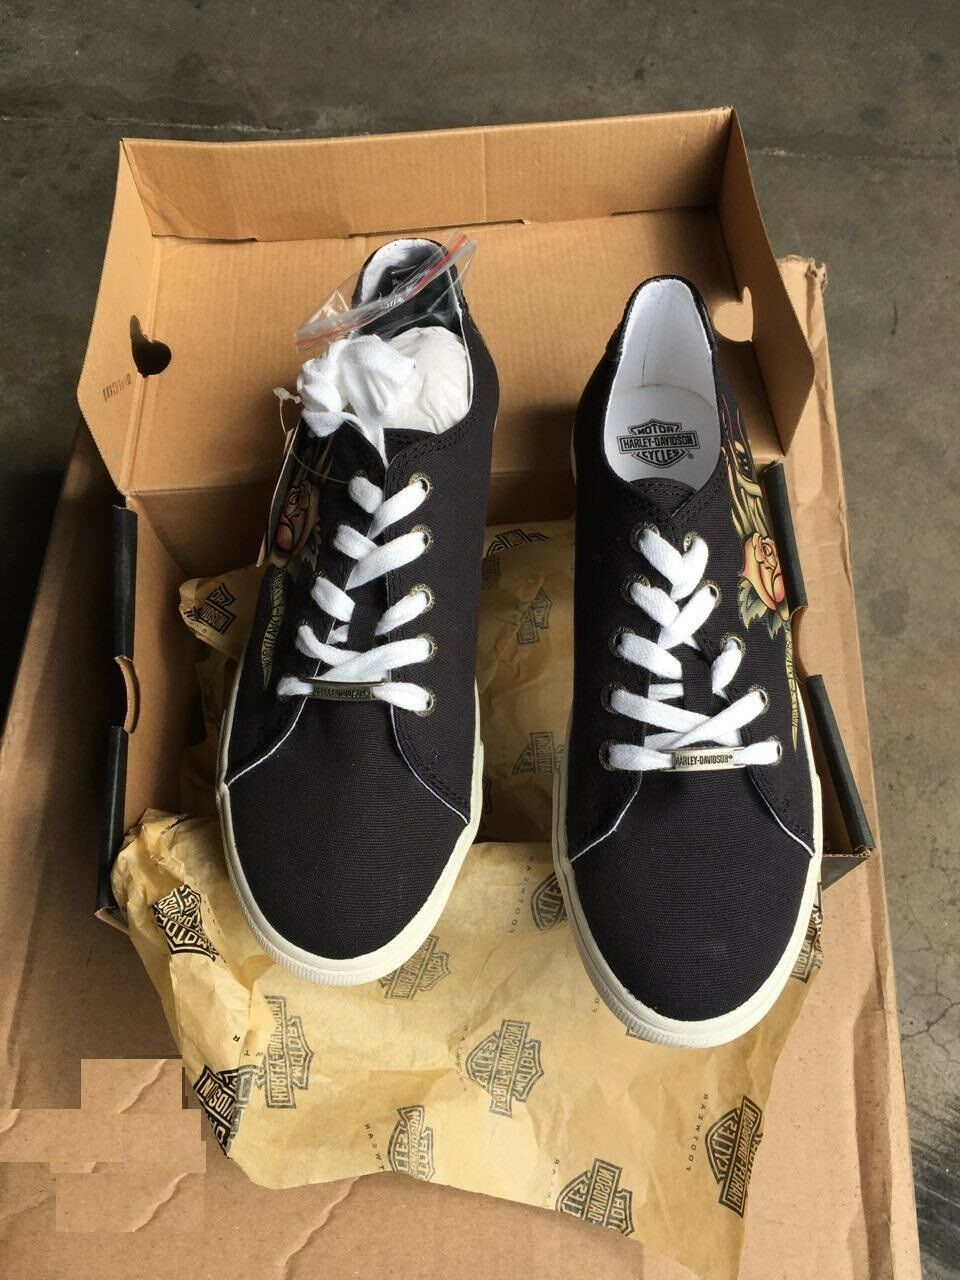 shoes Harley Davidson Size 5.5